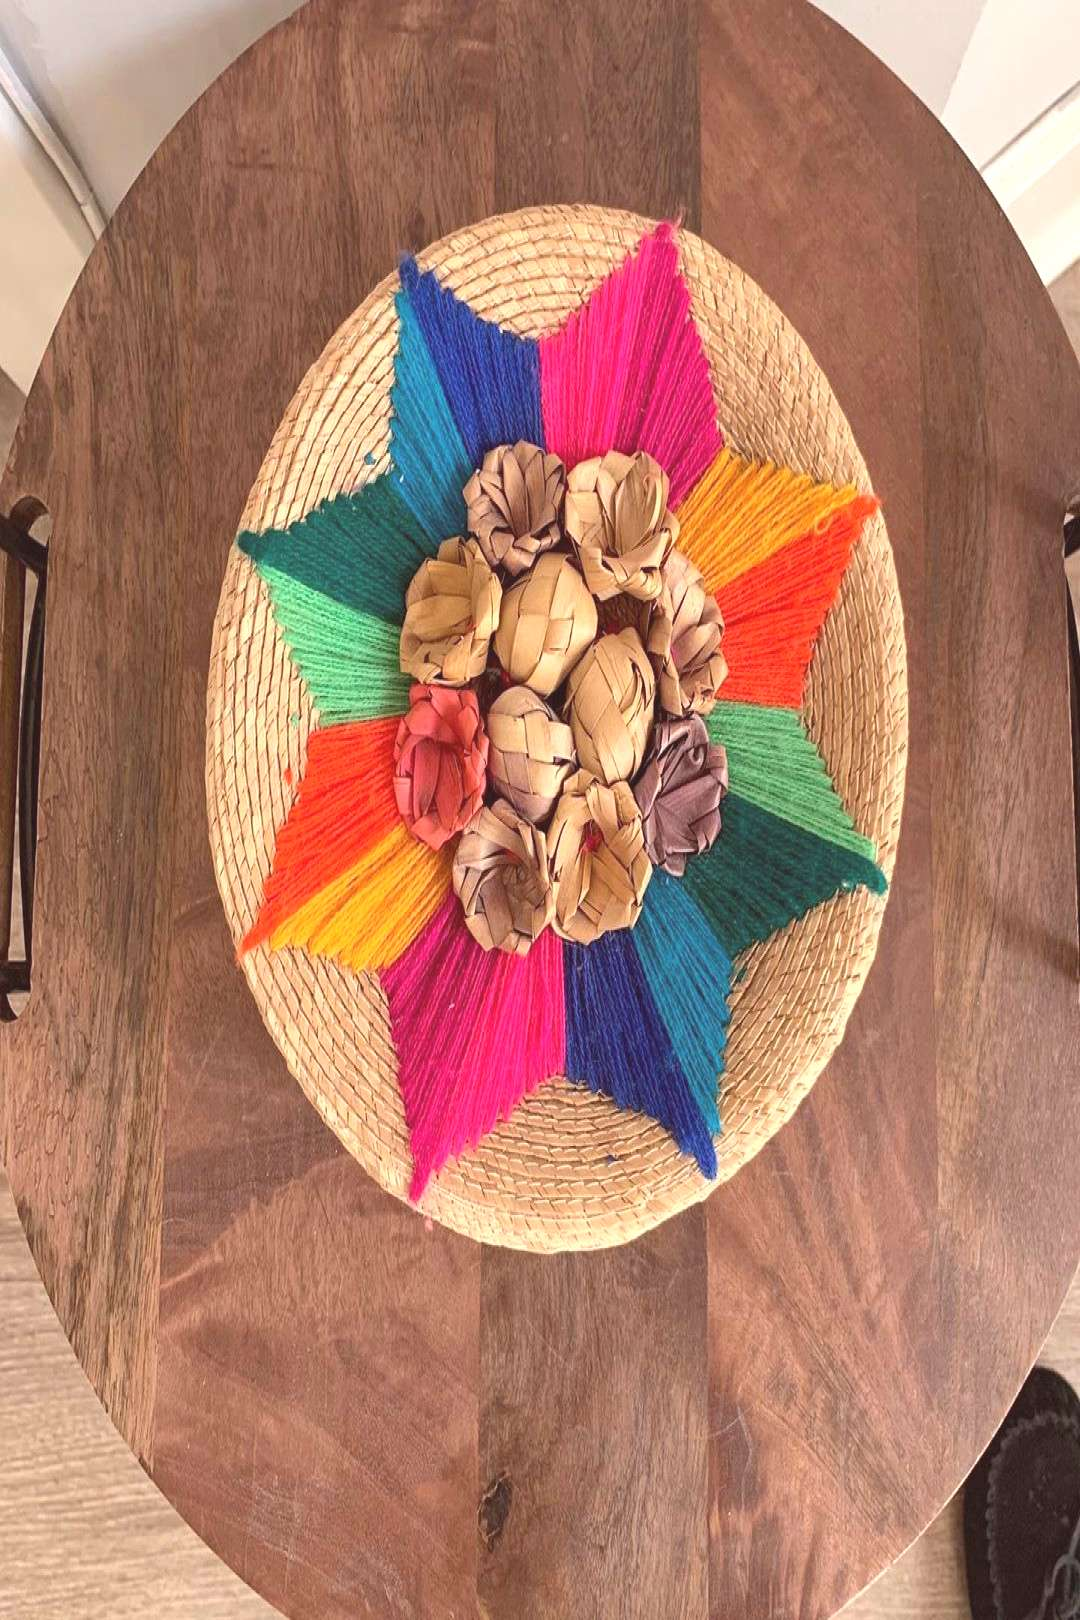 Vintage handwoven tortilla basket. Perfect for taco Tuesday! $12